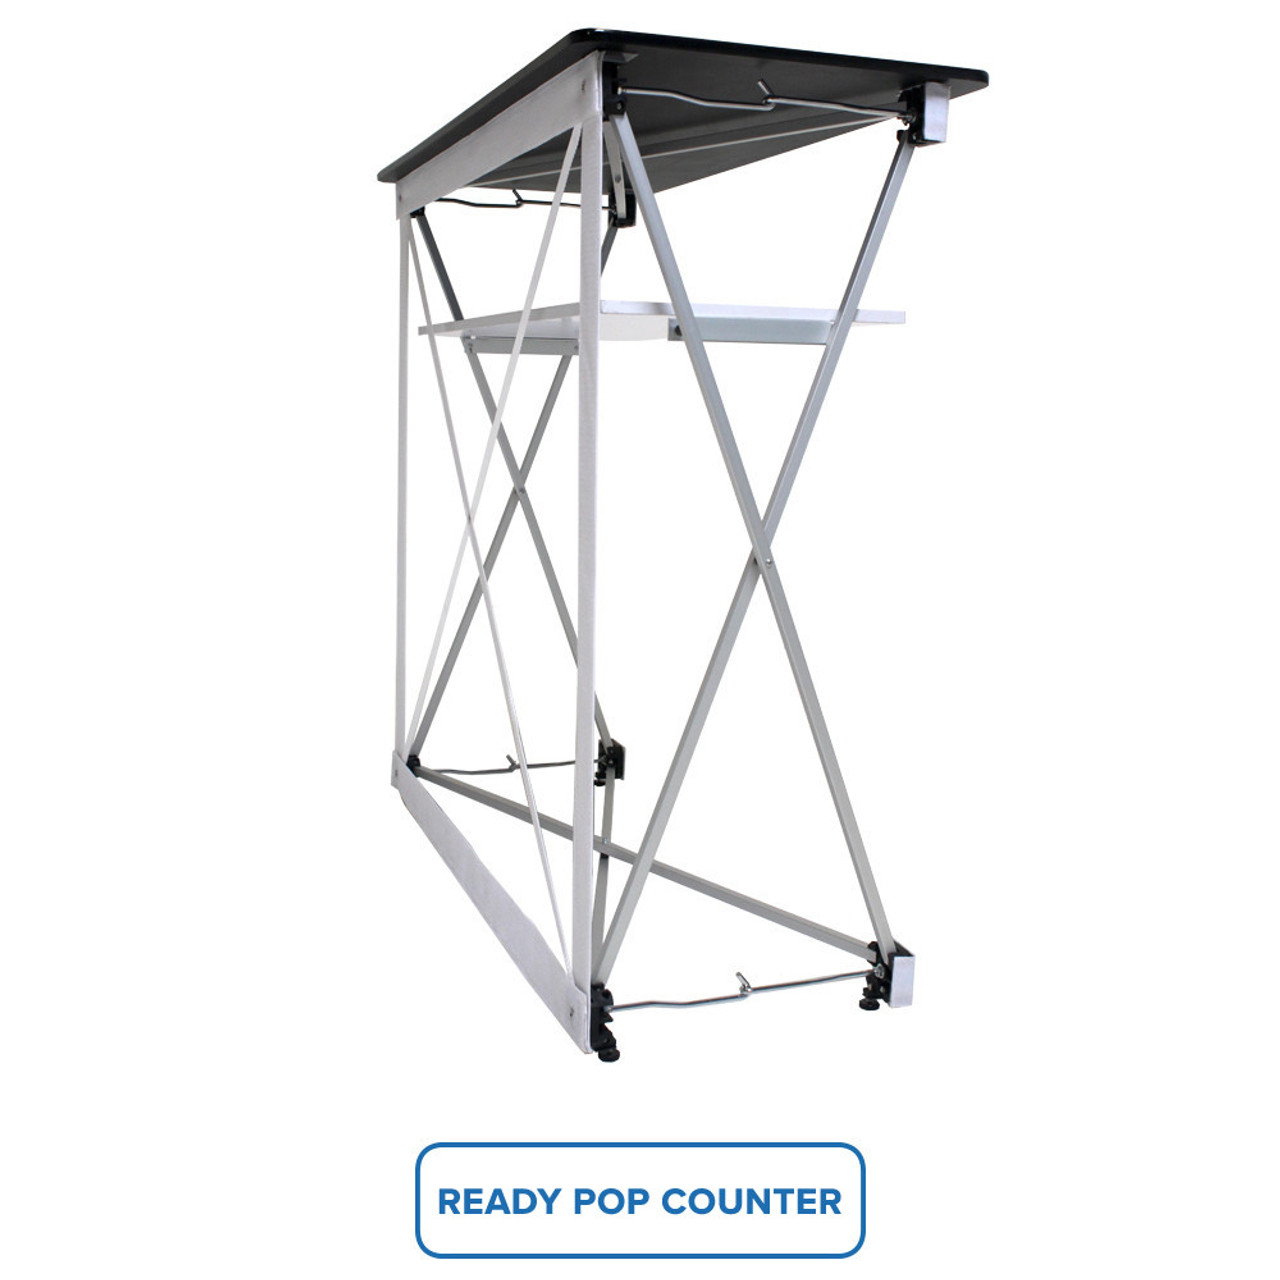 Ready Pop Counter Frame View